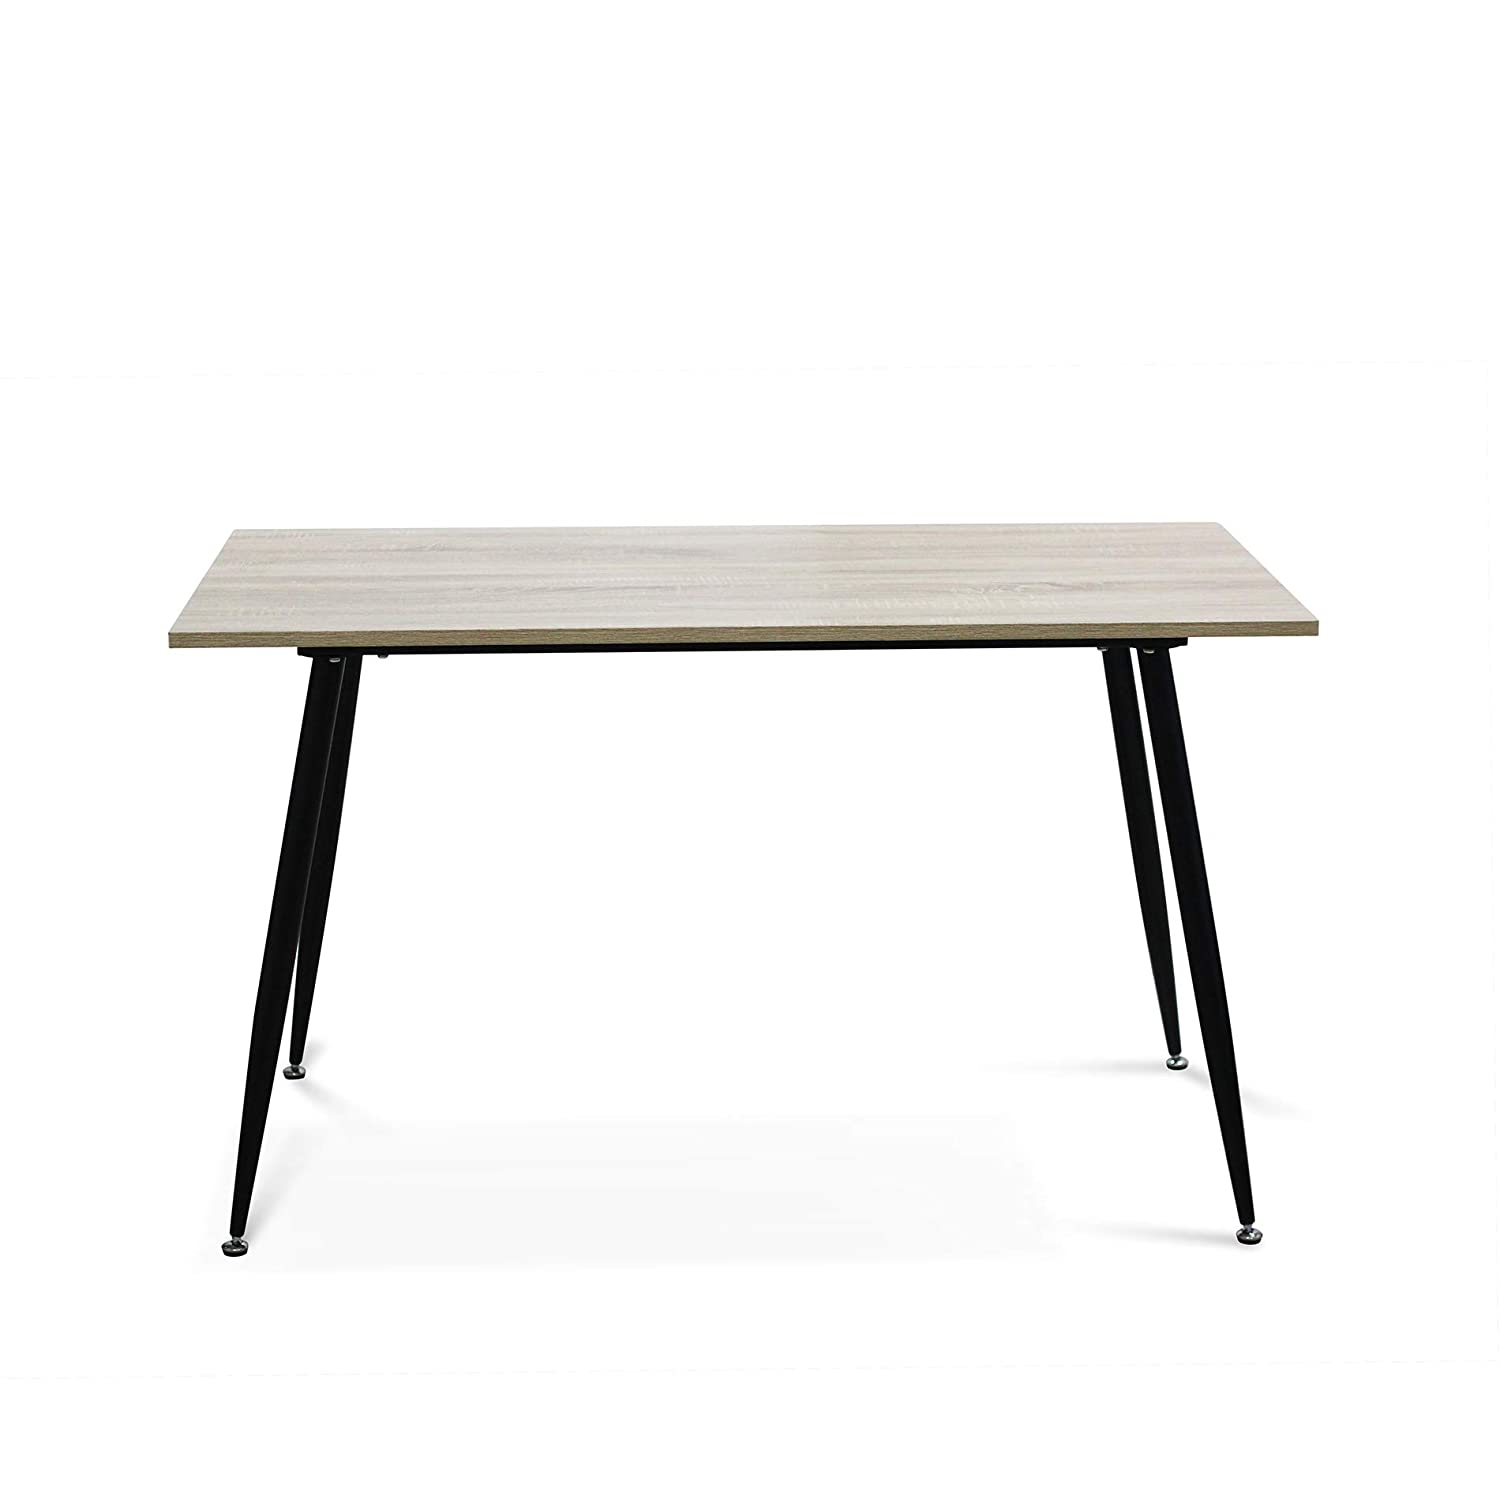 IDS Modern Dining Table,Wooden Look Dining Table with Metal Legs Rectangle Office Table